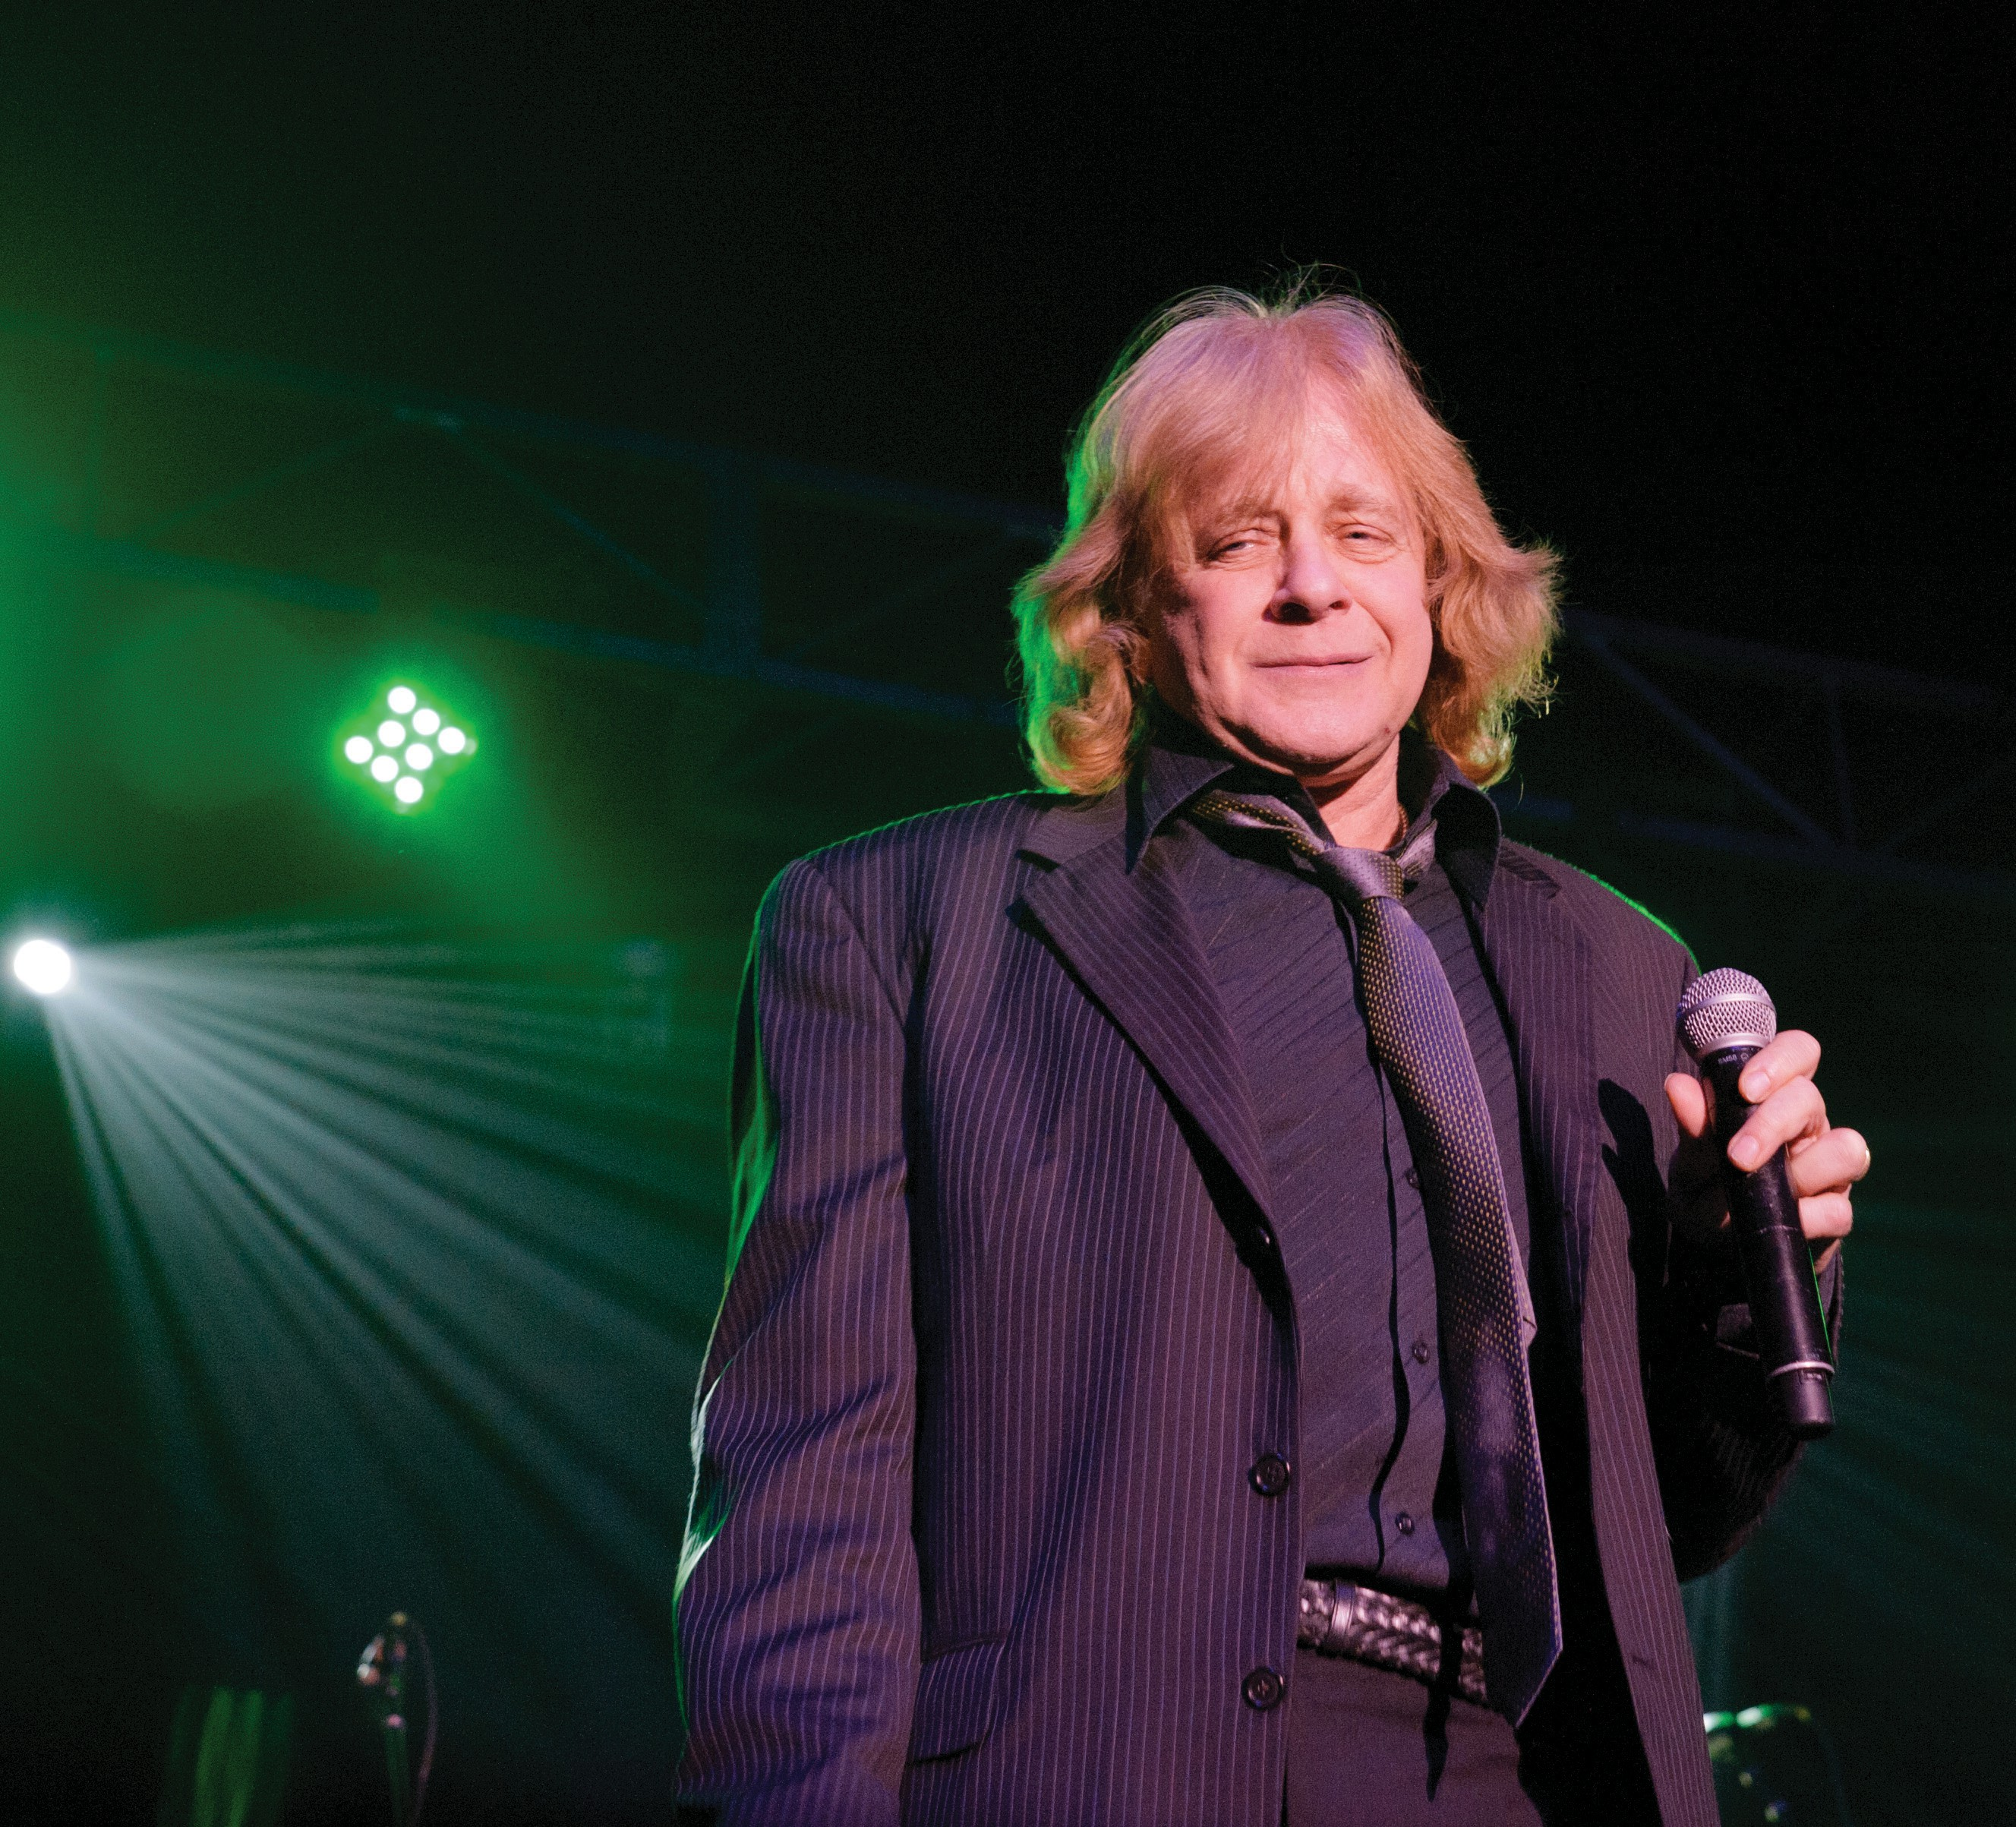 """Eddie Money performing in """"Jingle Bell Rock"""" with Mickey Thomas at Thunder Valley Casino Resort in Lincoln, CA on Dec. 15, 2011. RANDY MIRAMONTEZ / SHUTTERSTOCK"""